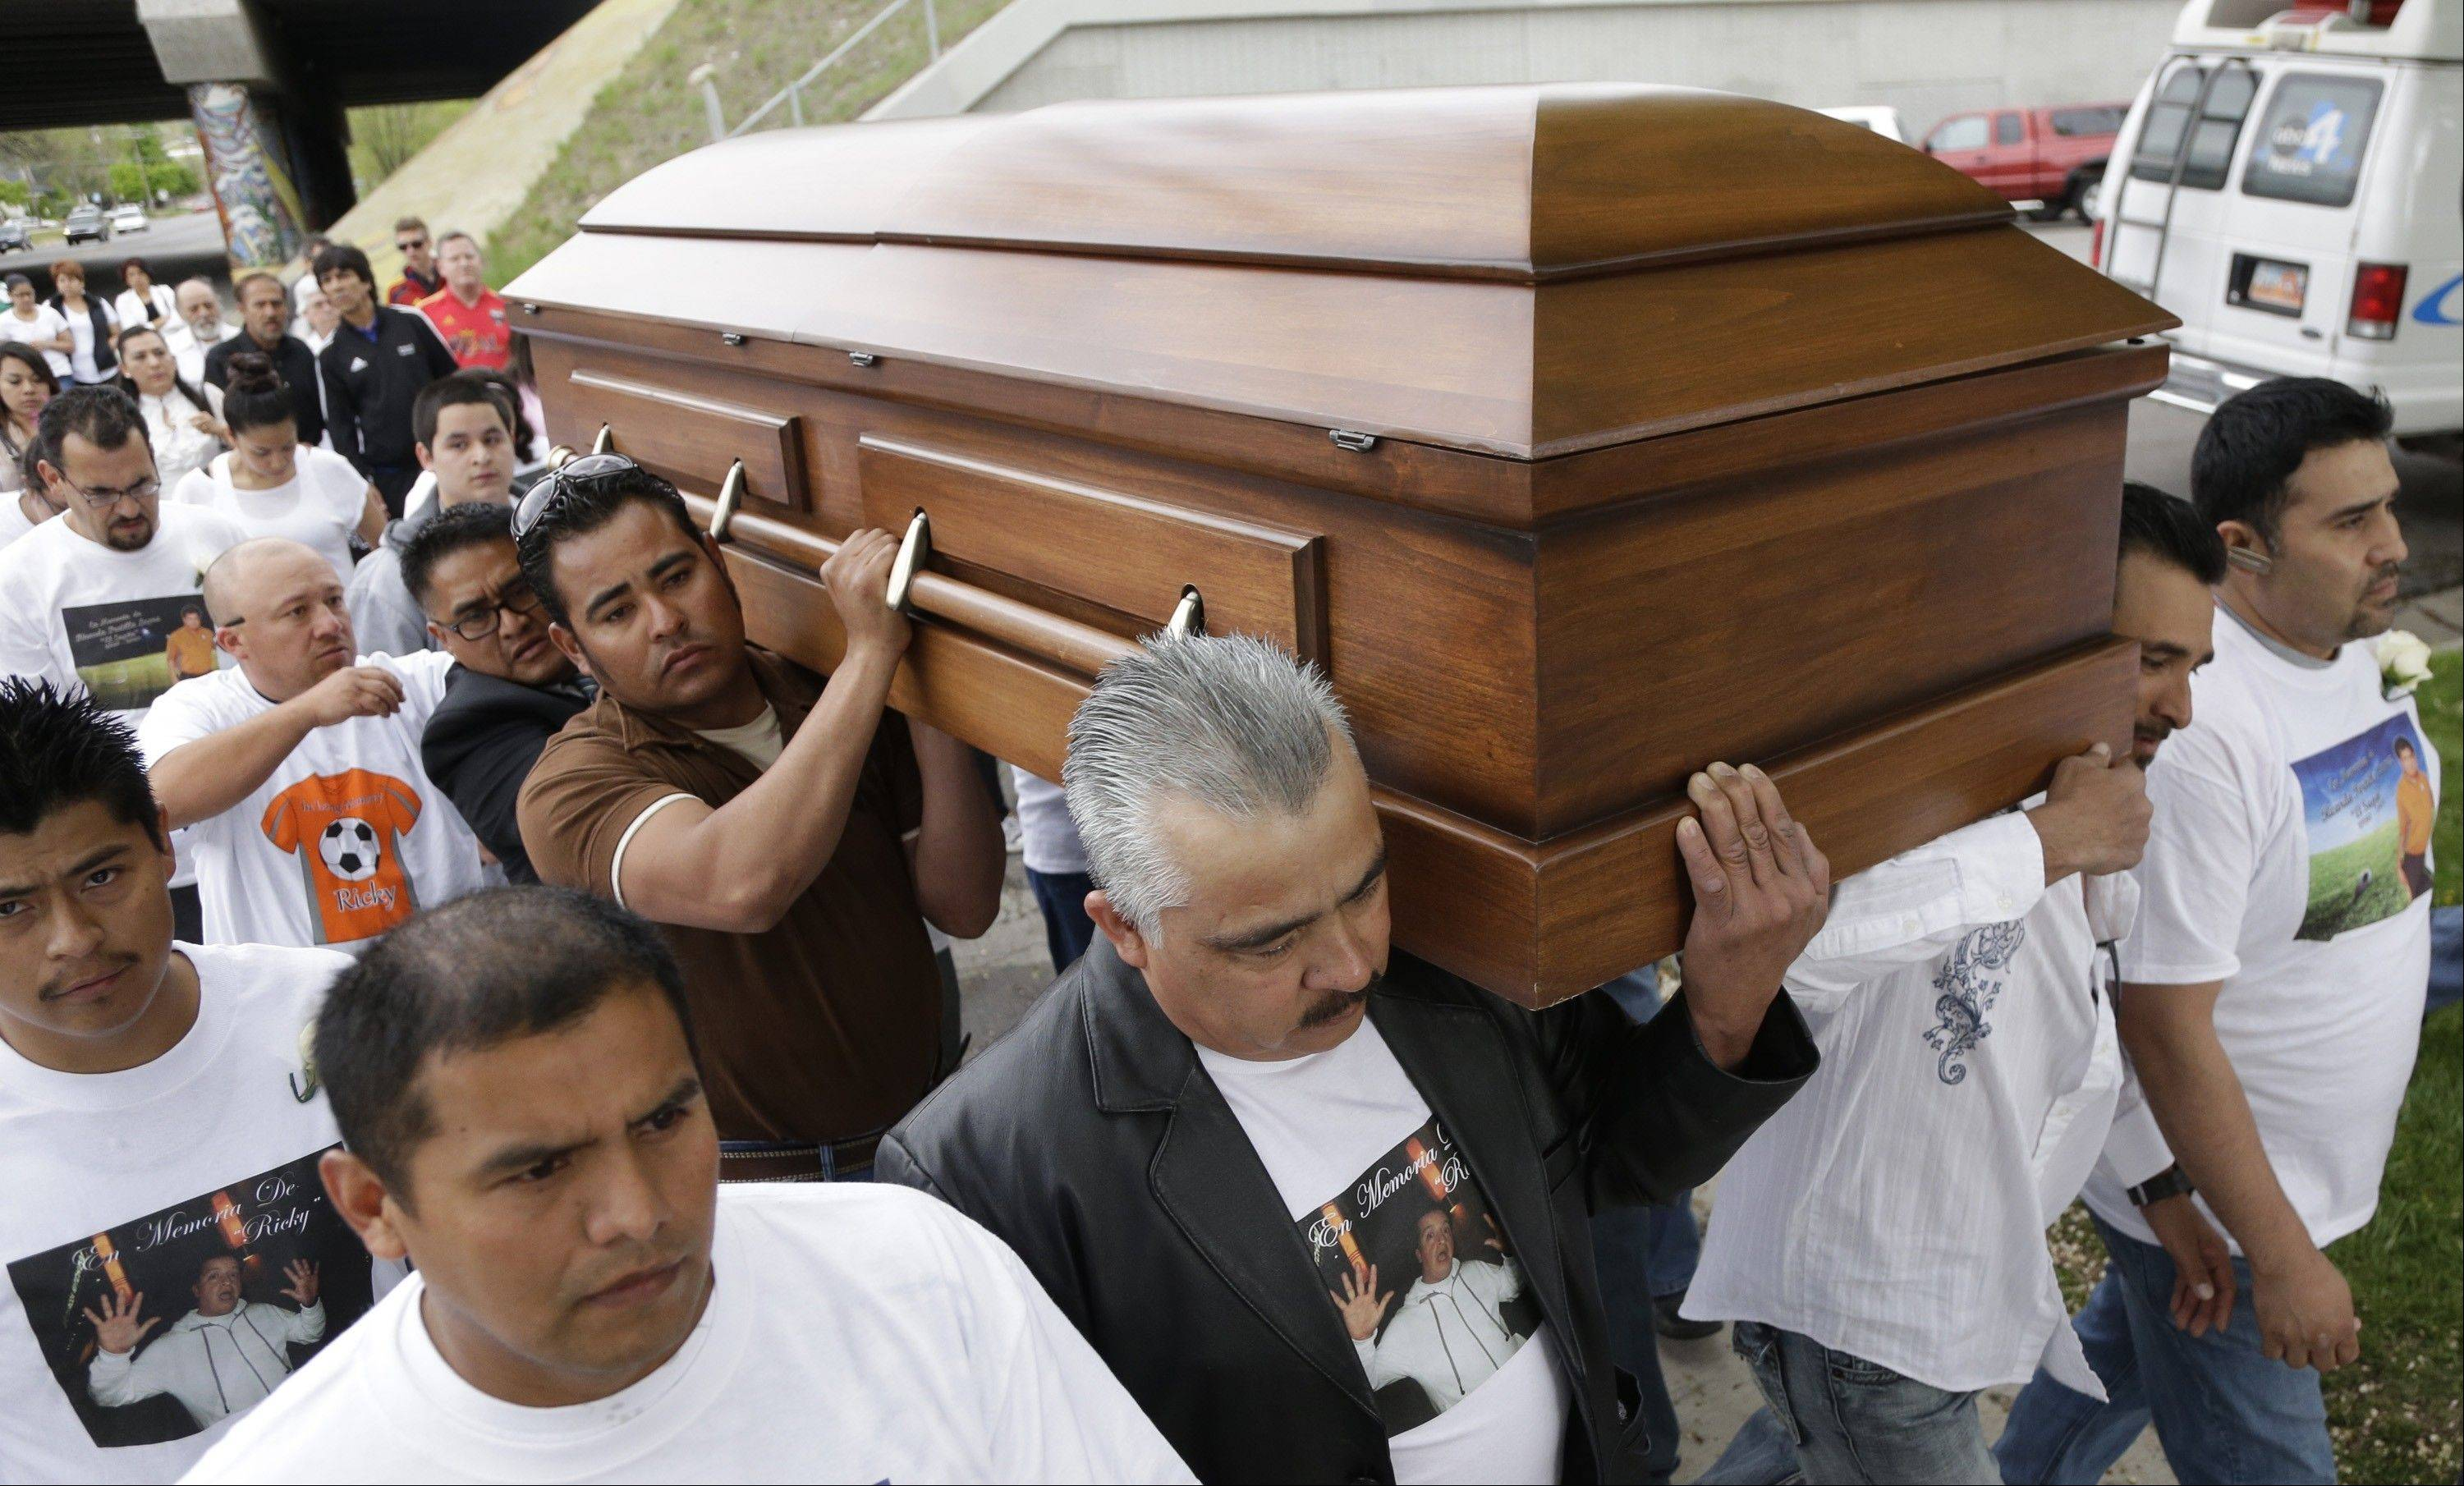 Mourners carry the casket of Ricardo Portillo along a street following a public wake to the funeral service at Our Lady of Guadalupe Church Wednesday, May 8, 2013, in Salt Lake City. Family and friends honored the memory of the Utah soccer referee at an emotional funeral service Wednesday evening just hours after the teenager who punched him before he fell into a coma was charged with homicide by assault.